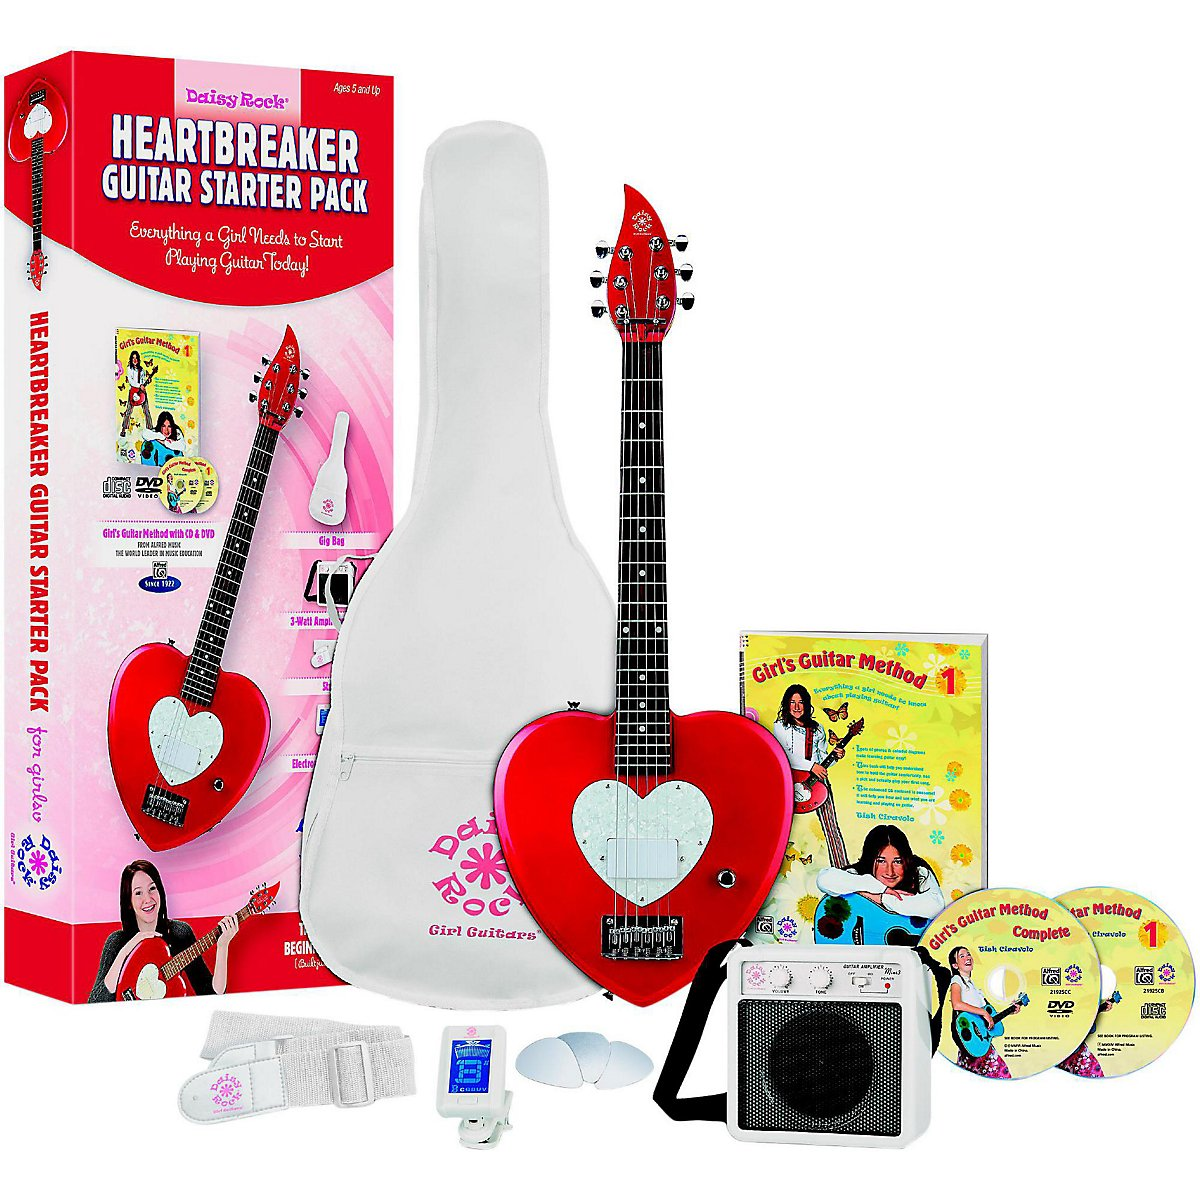 Daisy Rock Heartbreaker Electric Short Scale Starter Pack, Red Hot Red